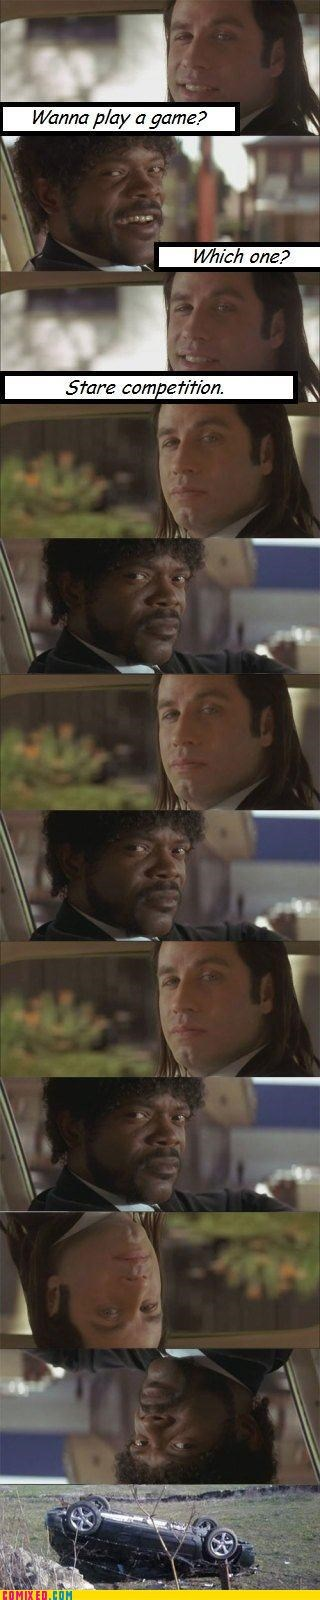 car accident,From the Movies,idiots,john travolta,pulp fiction,Samuel L Jackson,stare contest